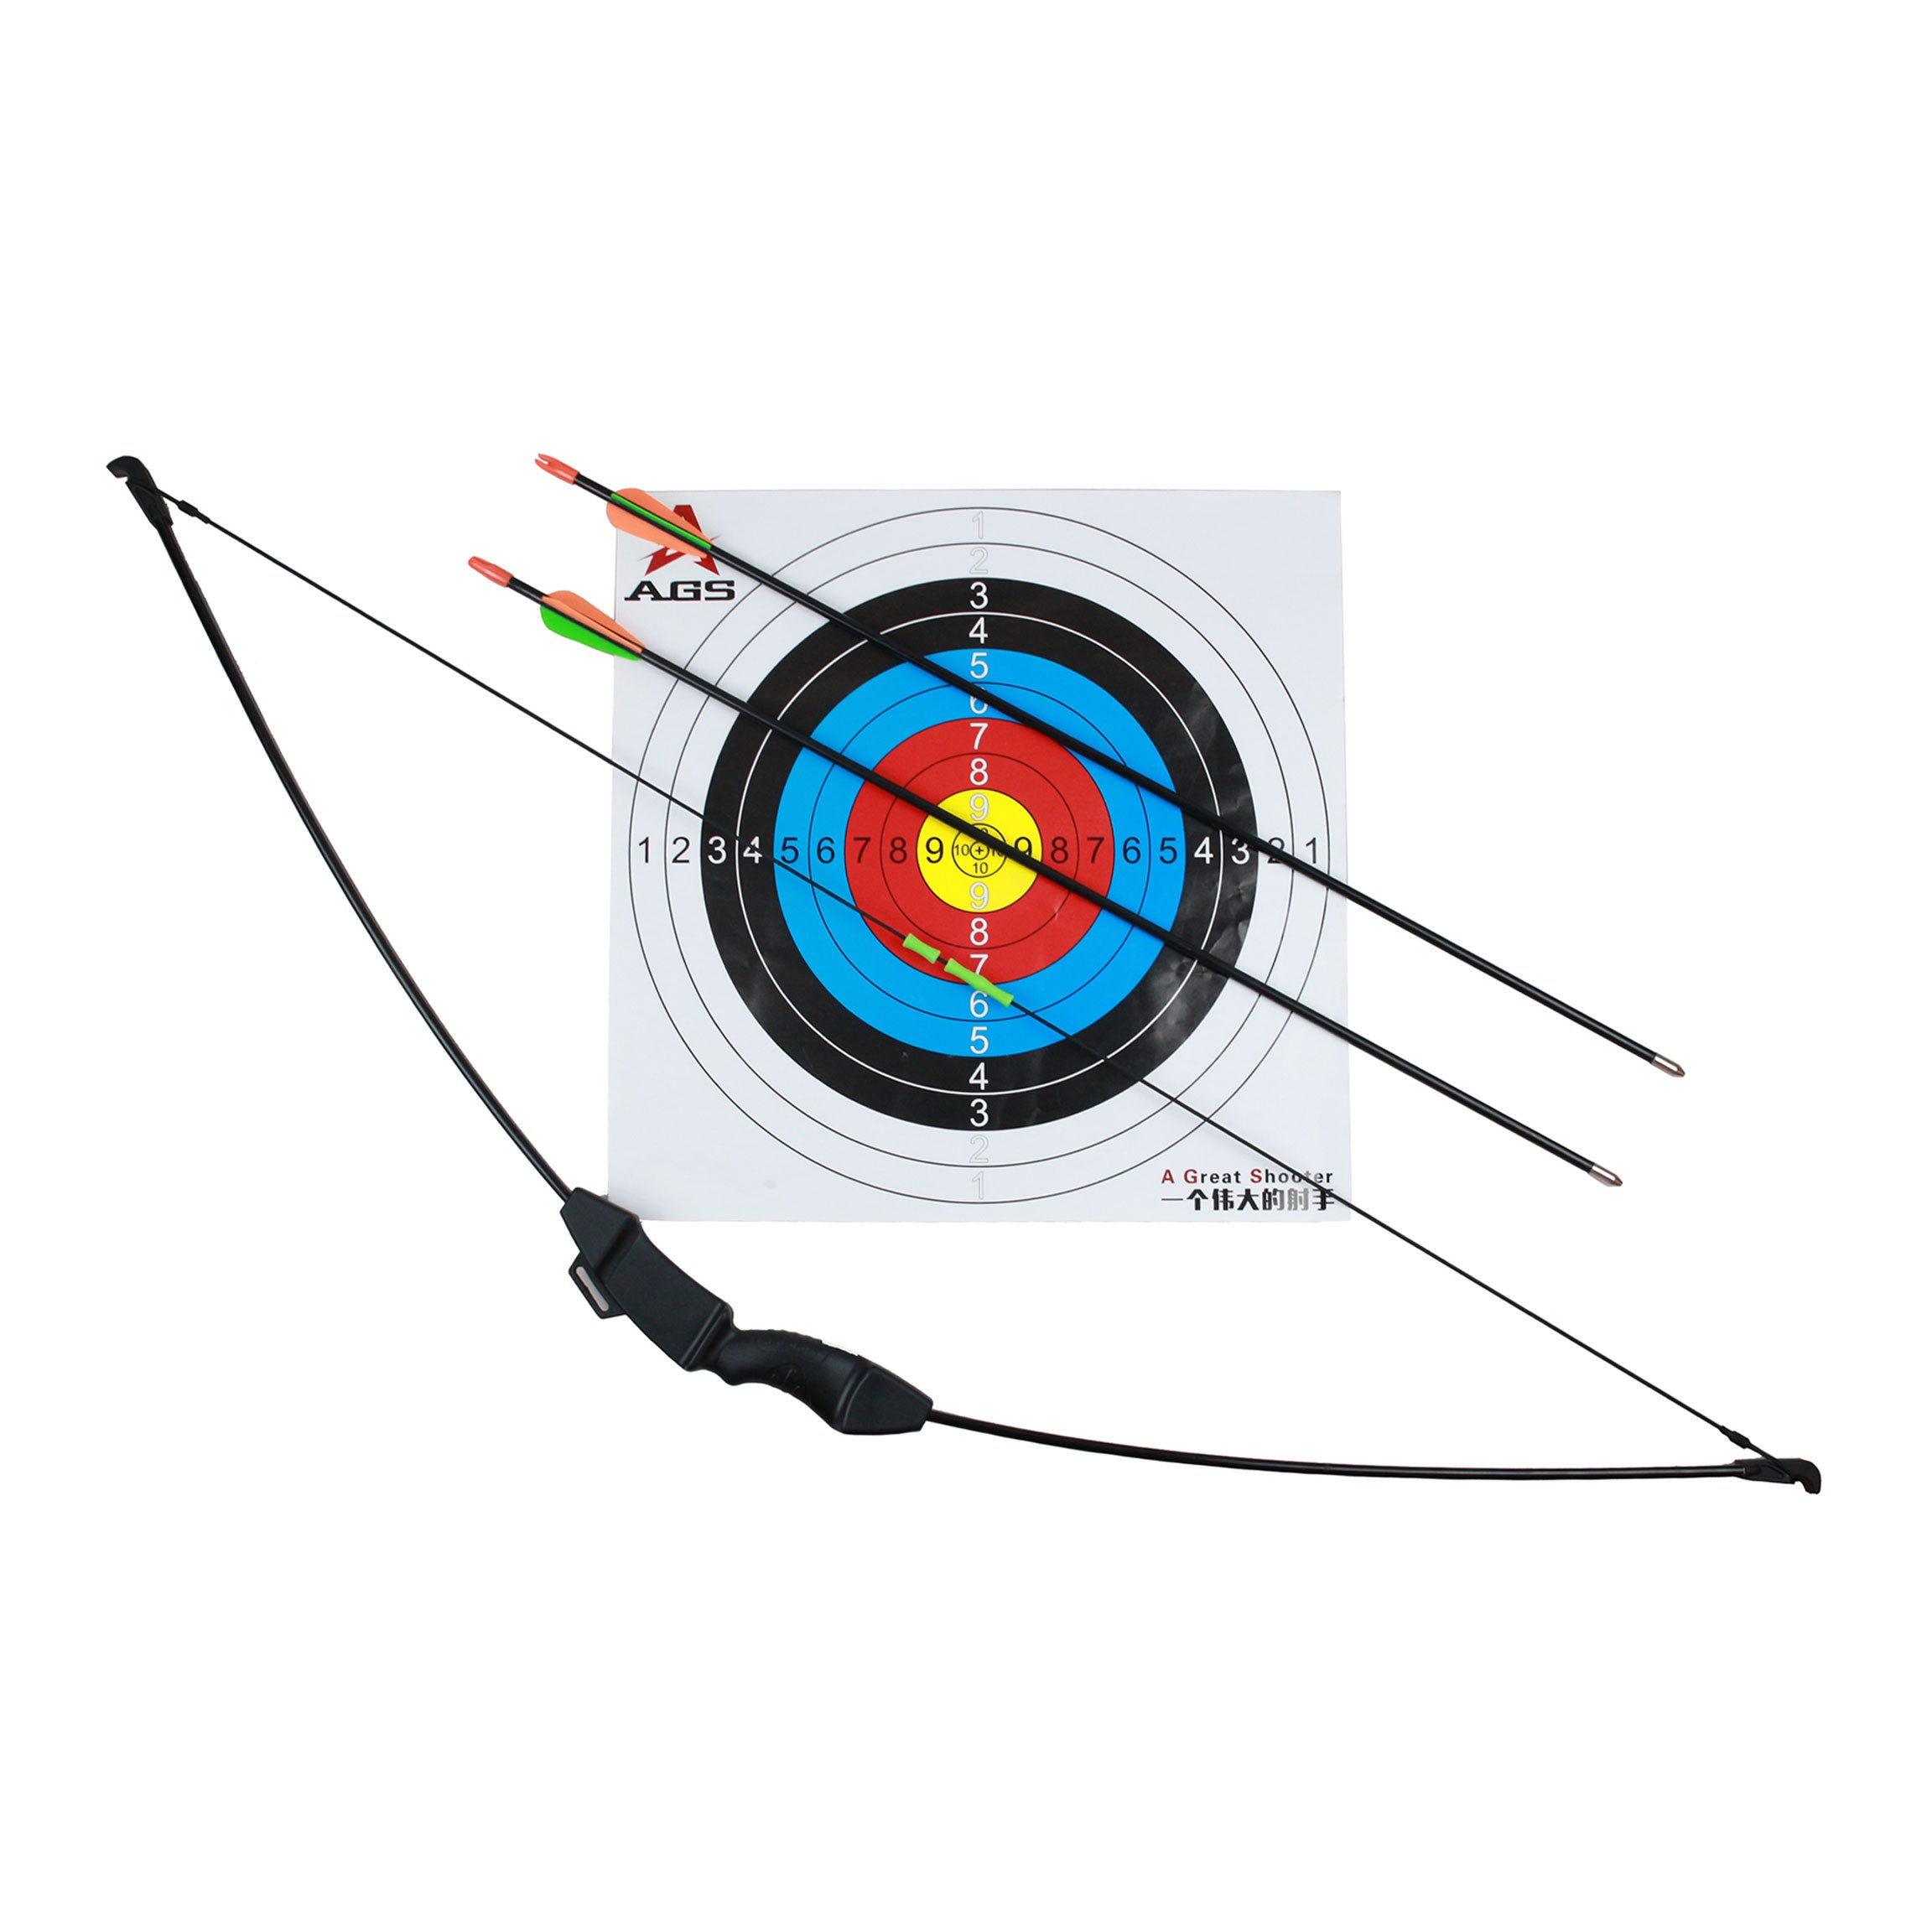 Geelife 45'' Basic Archery Bow and Arrow Set Start Recurve Bow Outdoor Sports Game Hunting Toy Gift Bow Kit Set with 2 Arrows and Target Sheet 18 Lb for Teens